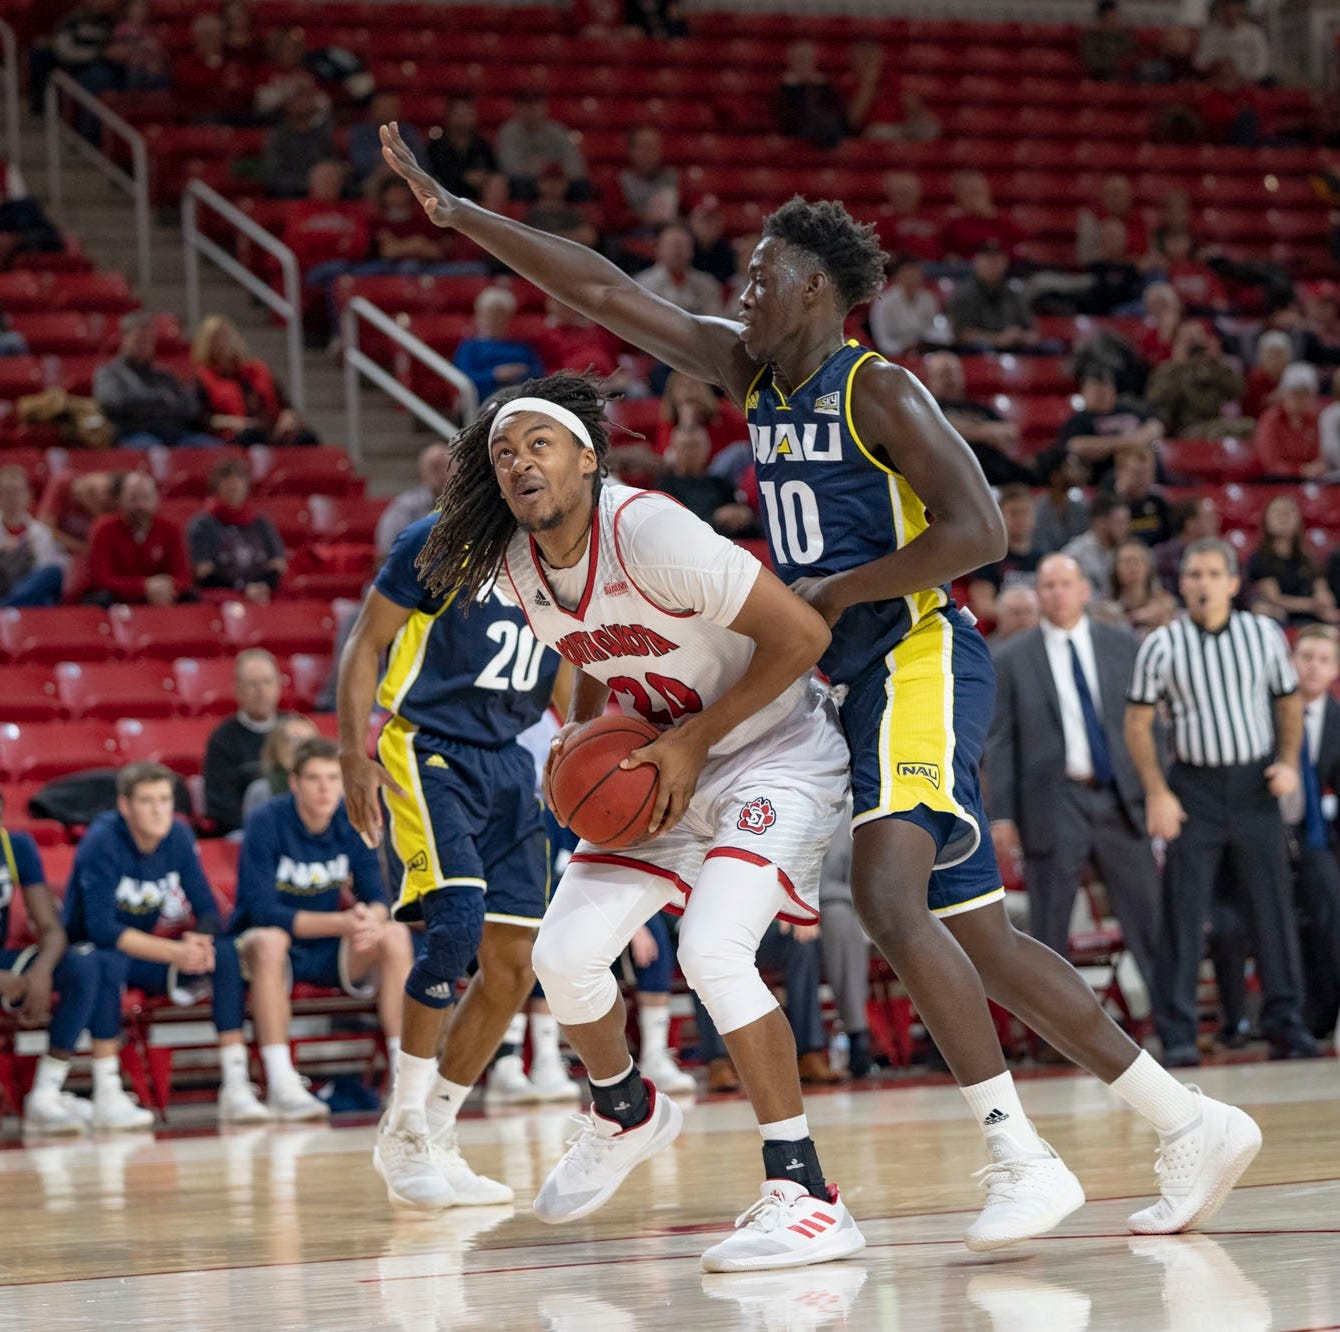 South Dakota men's basketball team defeats Northern Arizona 90-74